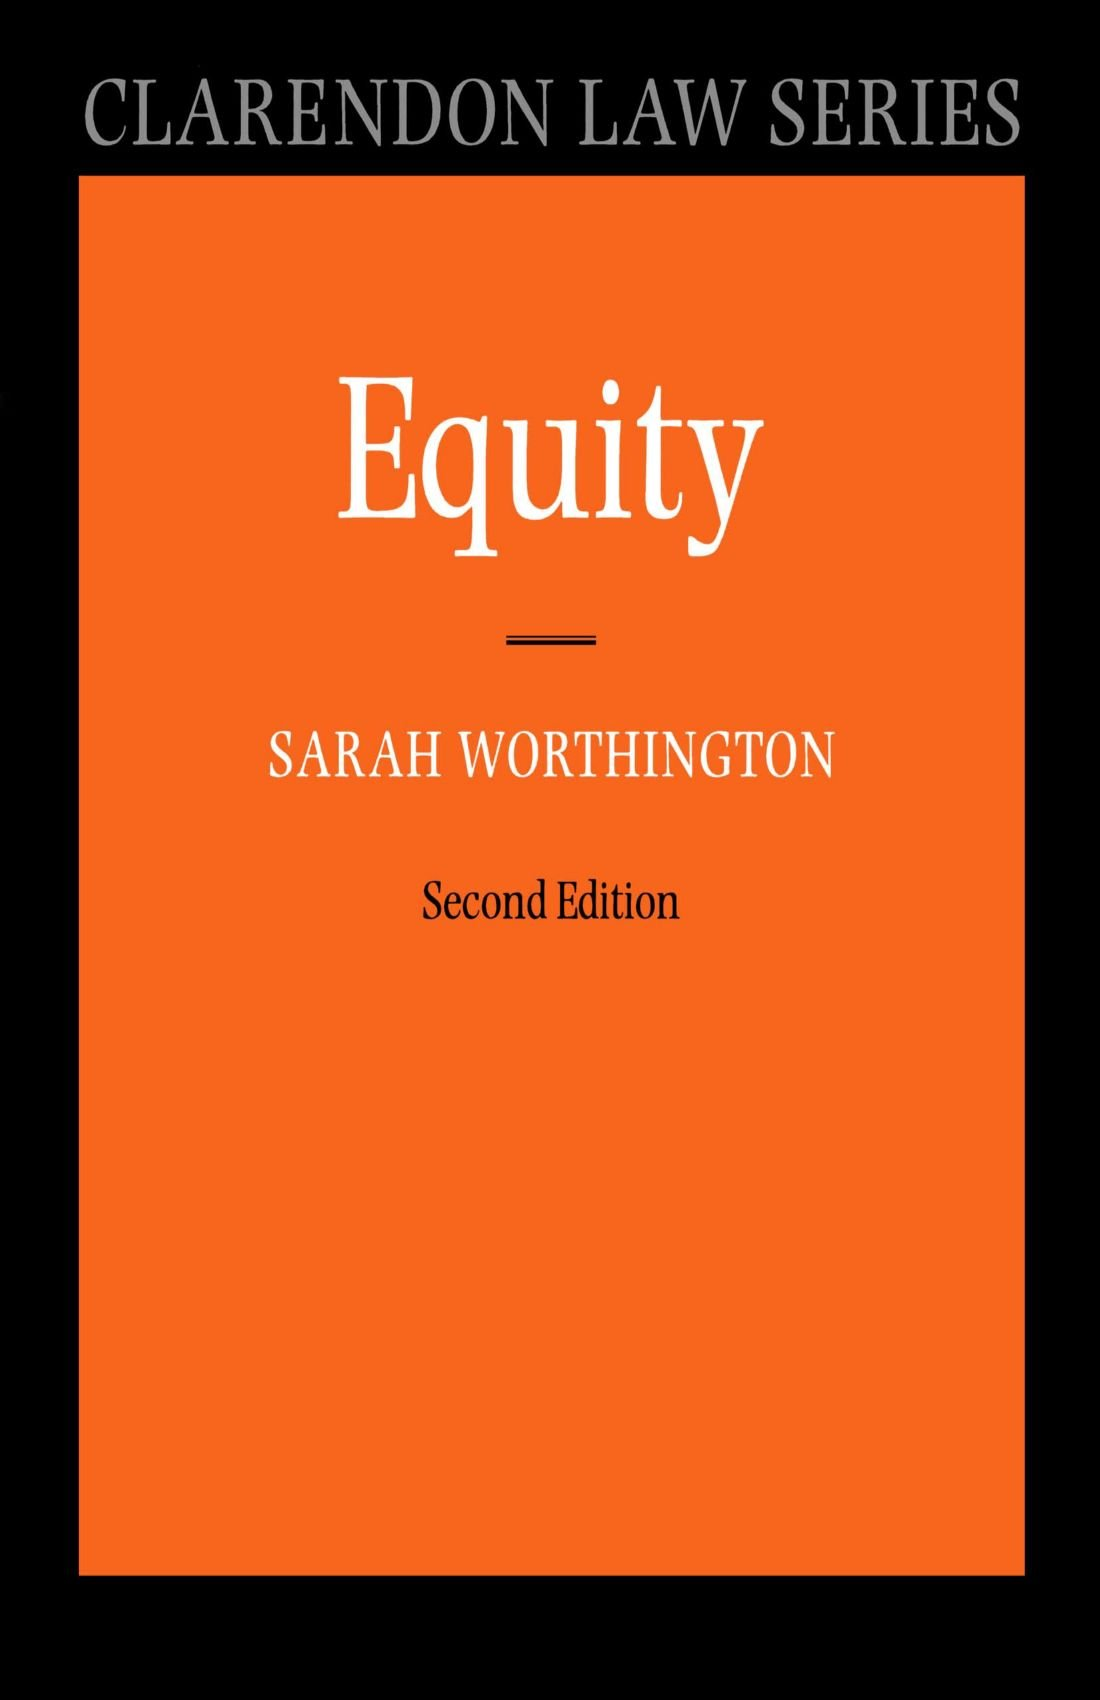 Equity (Clarendon Law Series) by imusti